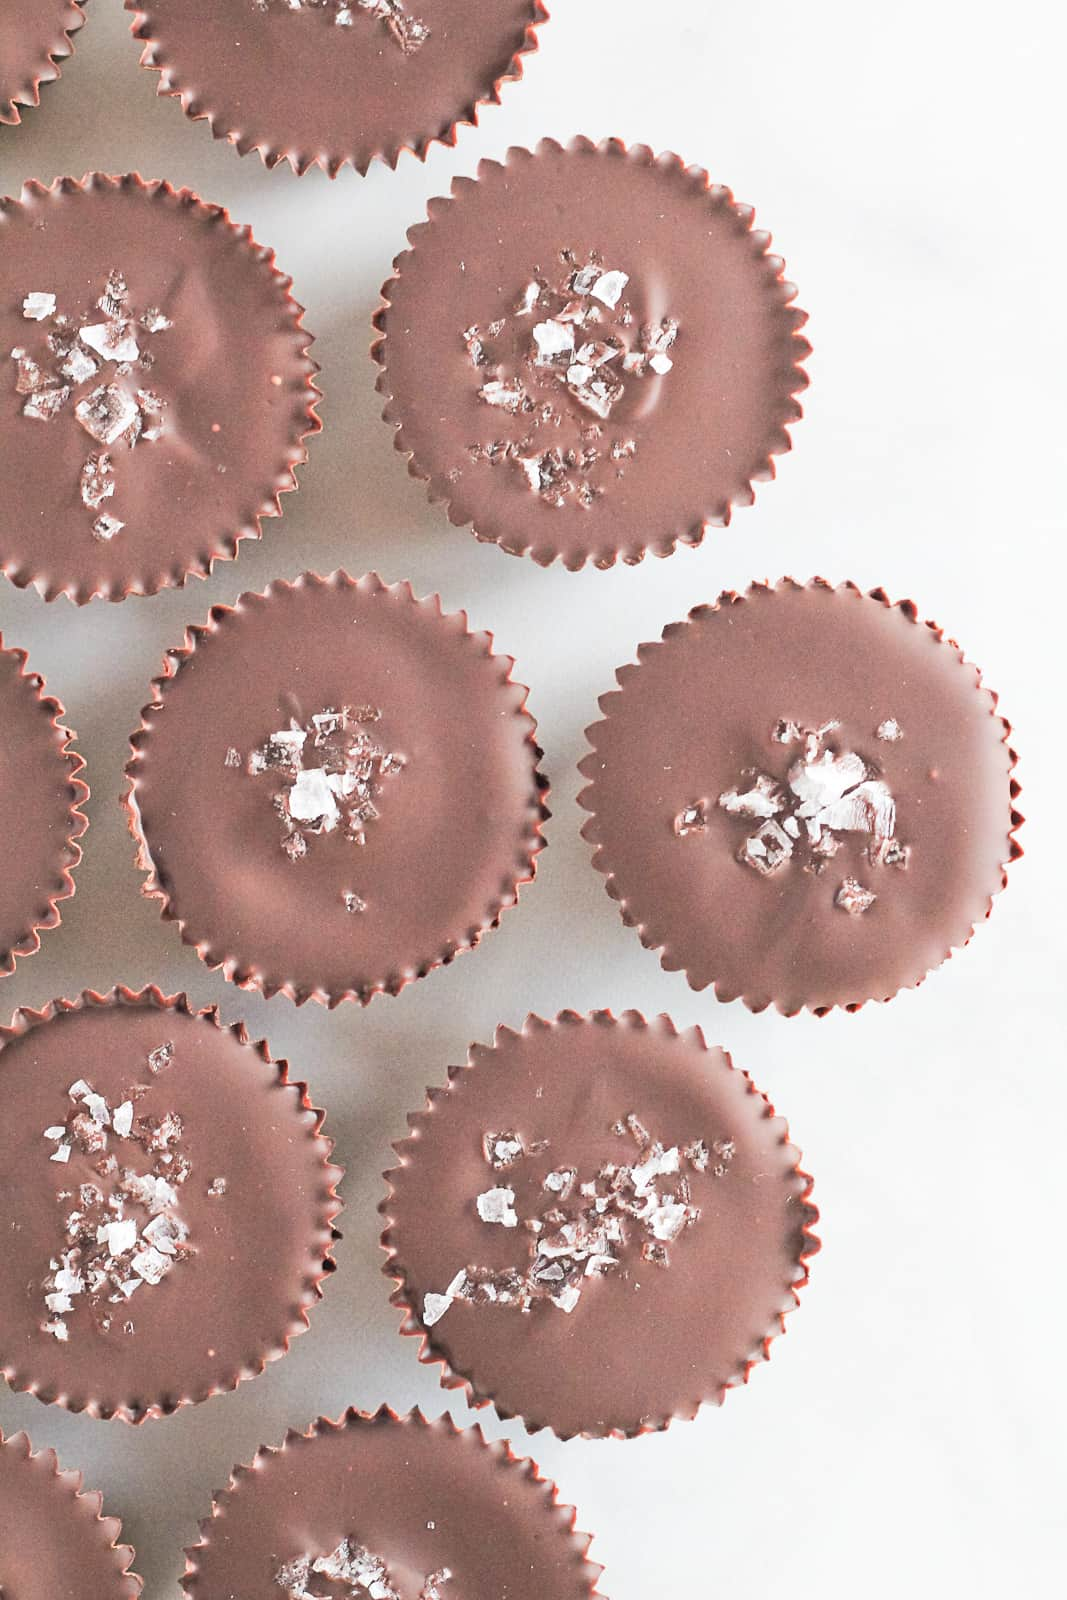 Healthy Dark Chocolate Almond Butter Cups